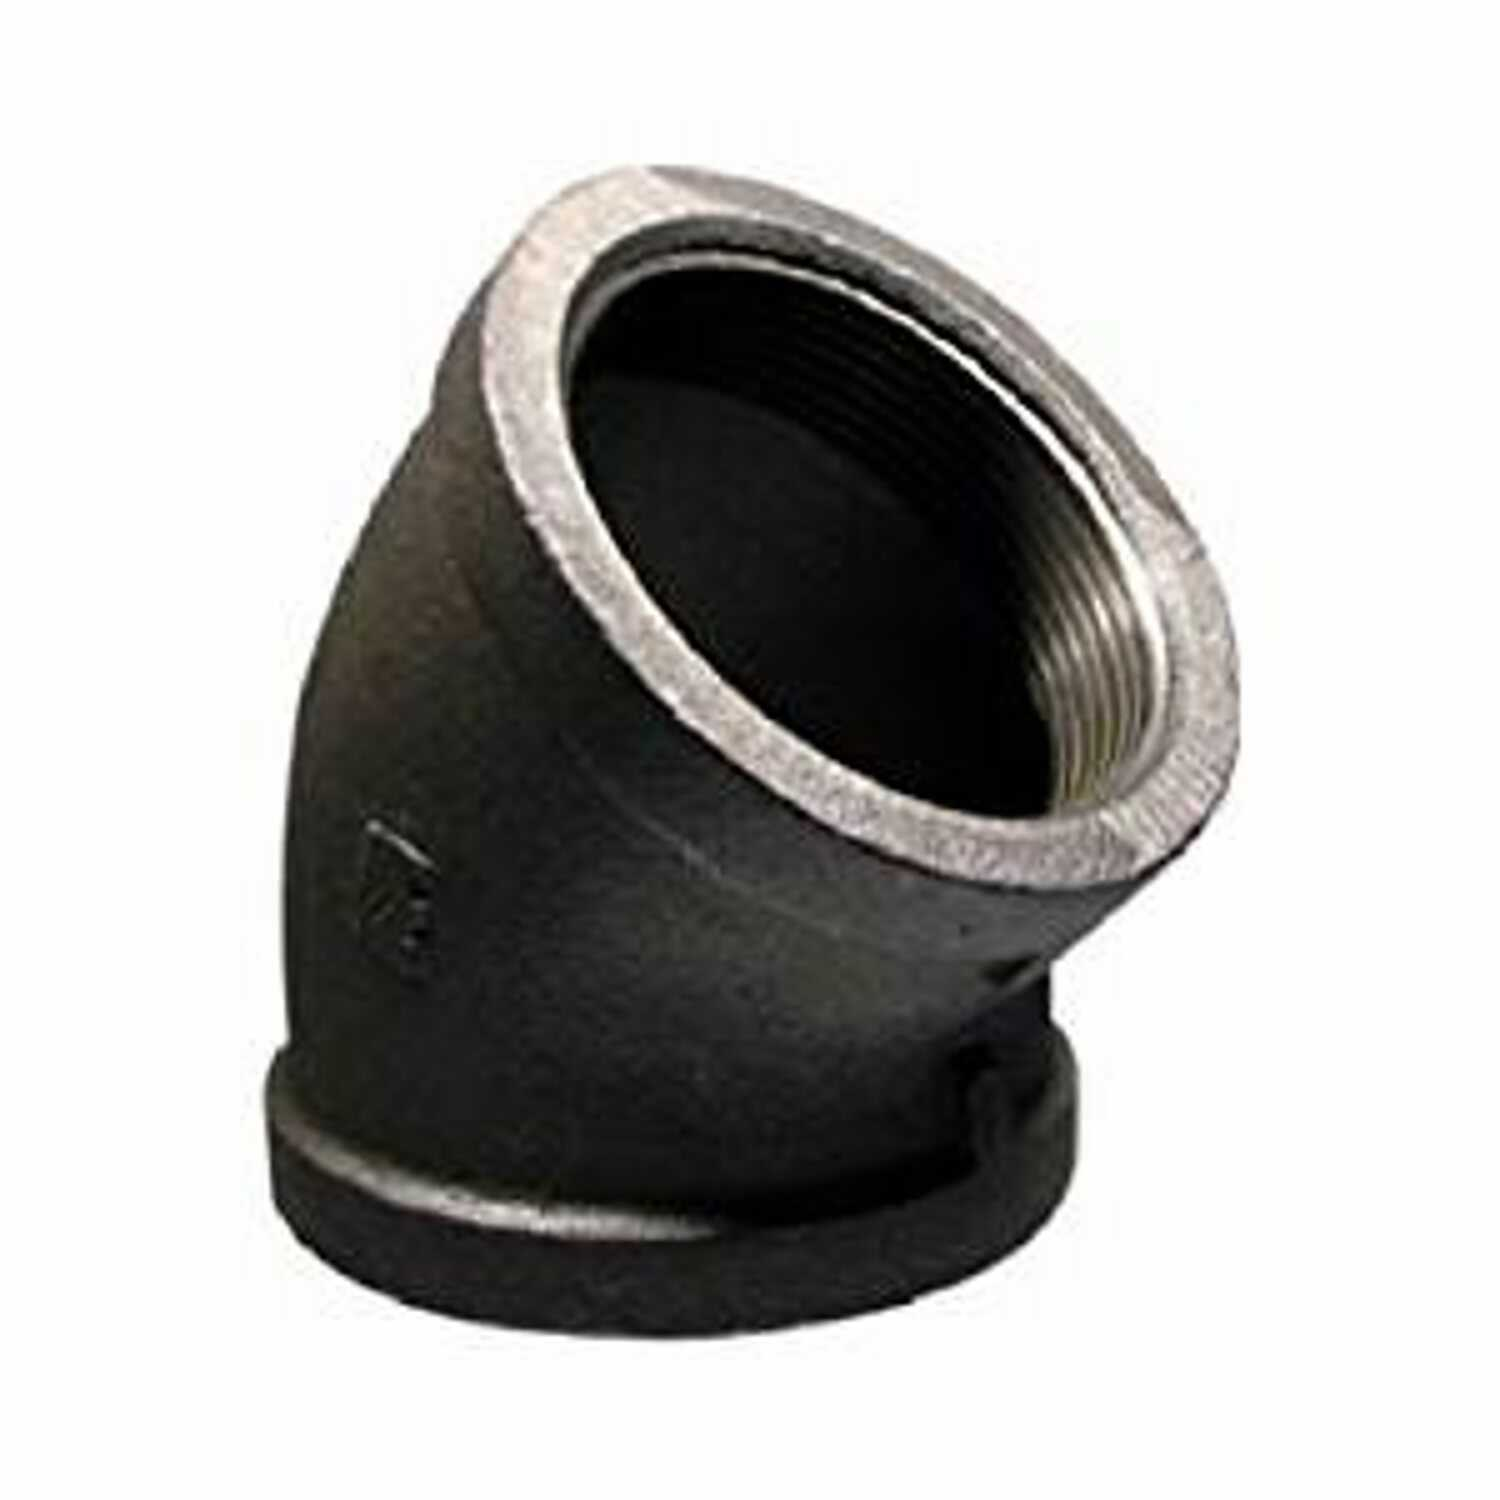 BK Products  Southland  4 in. FPT   x 4 in. Dia. FPT  Black  Malleable Iron  45 Degree Elbow